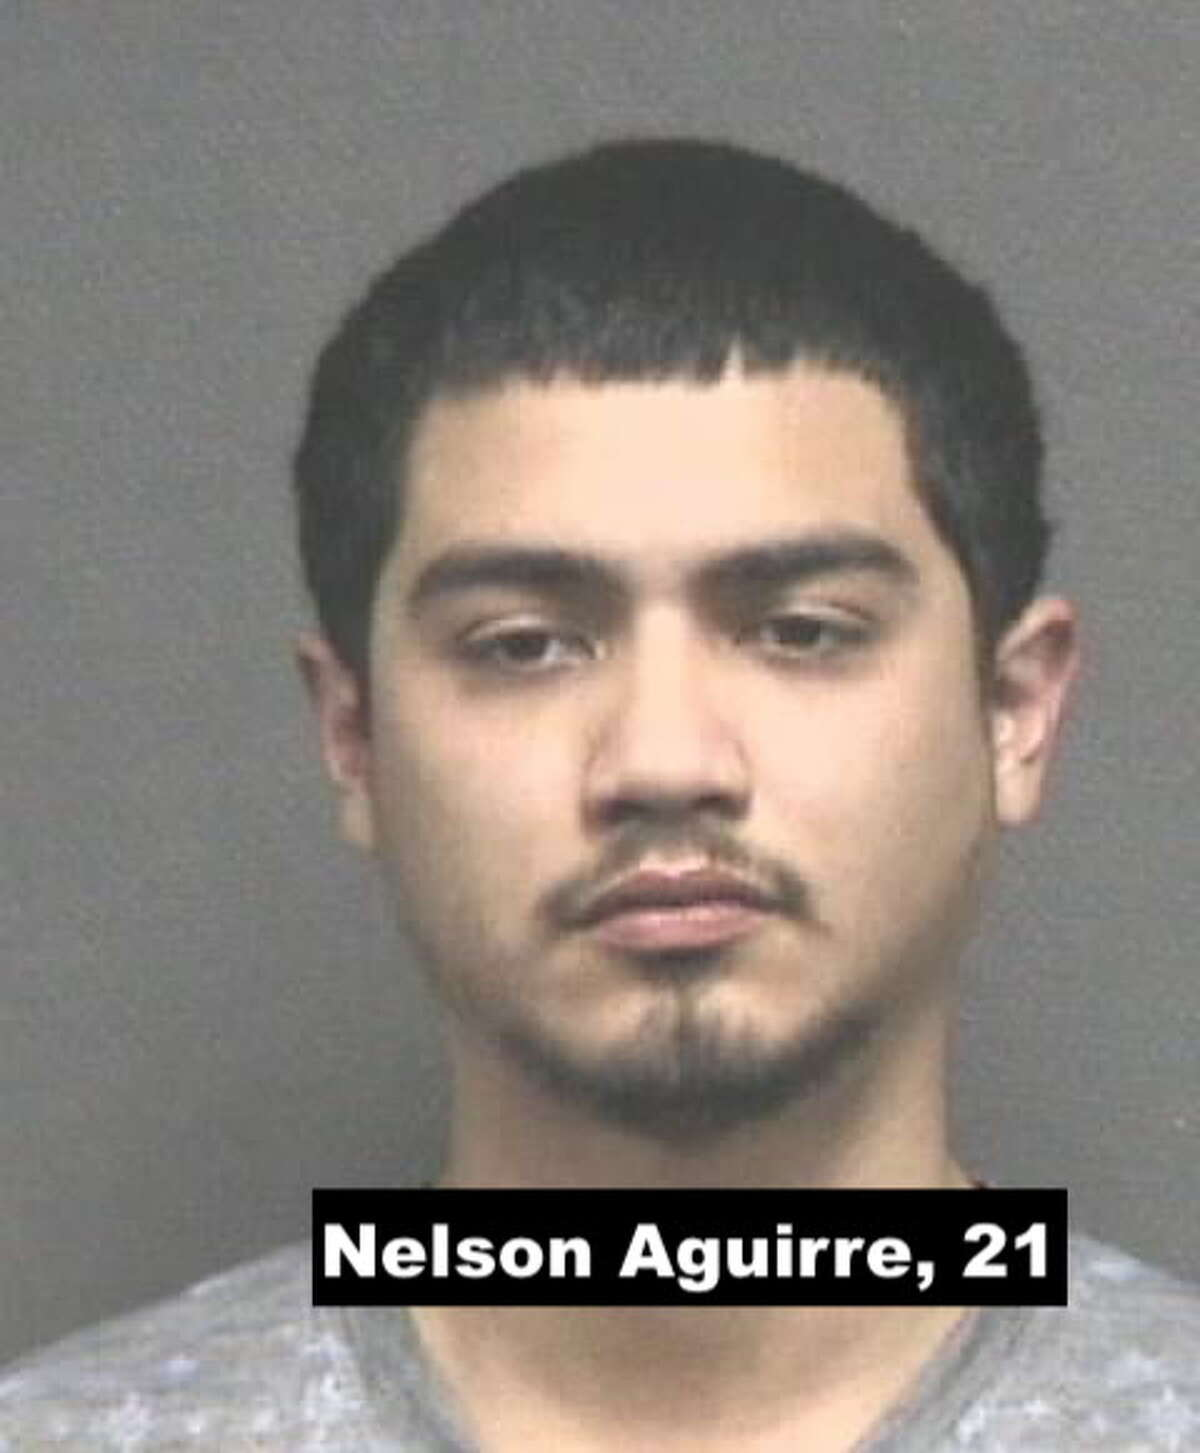 Nelson Aguirre, 21